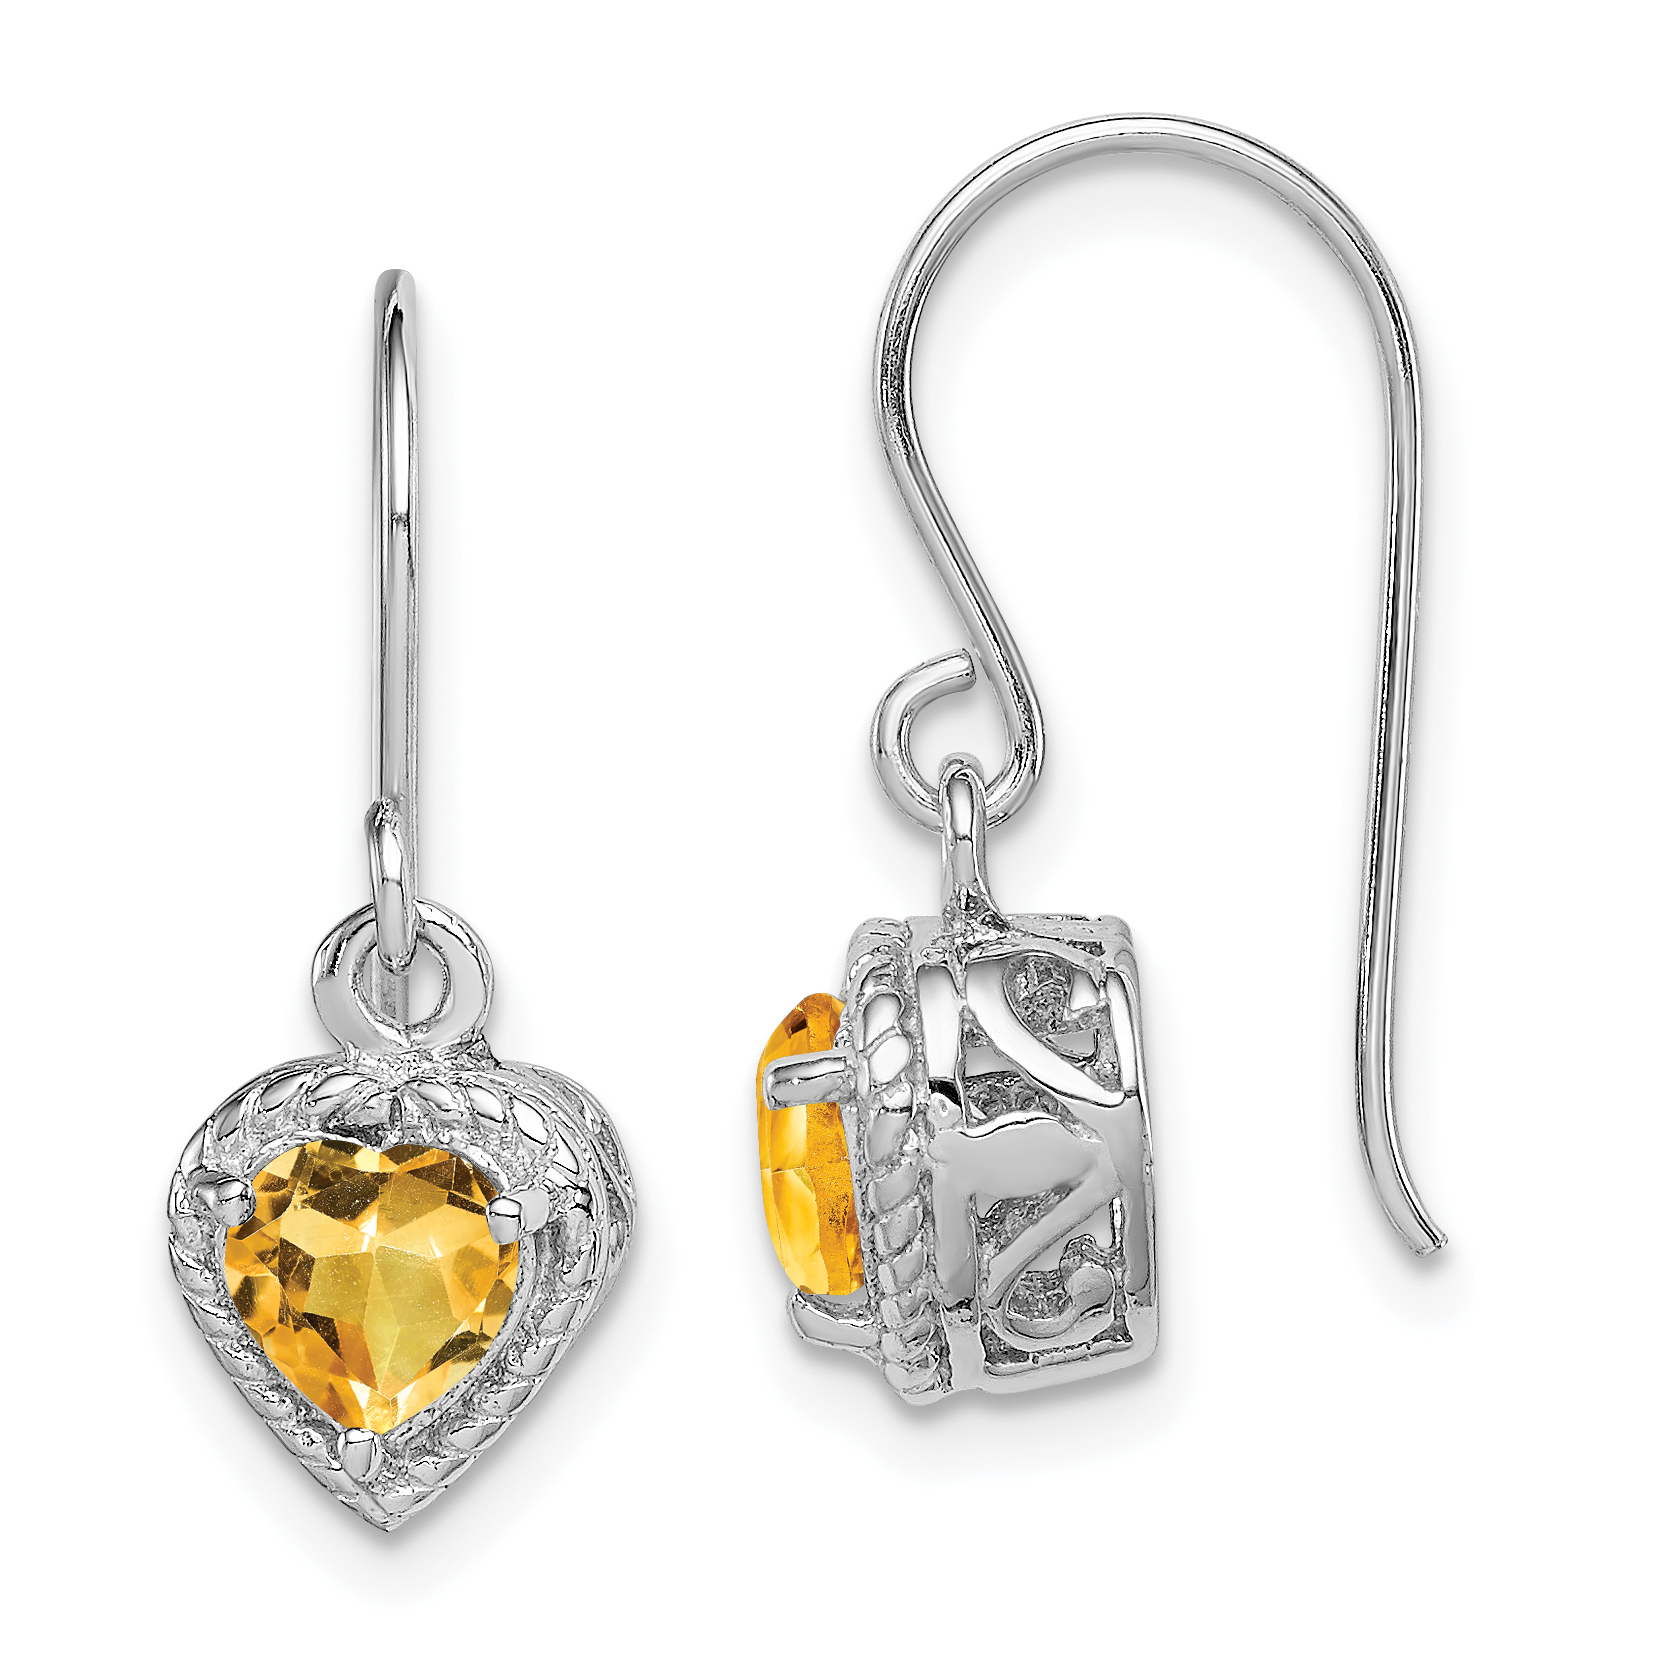 Sterling Silver Rhodium Citrine Small Heart Earrings QE9412CI - image 2 of 2